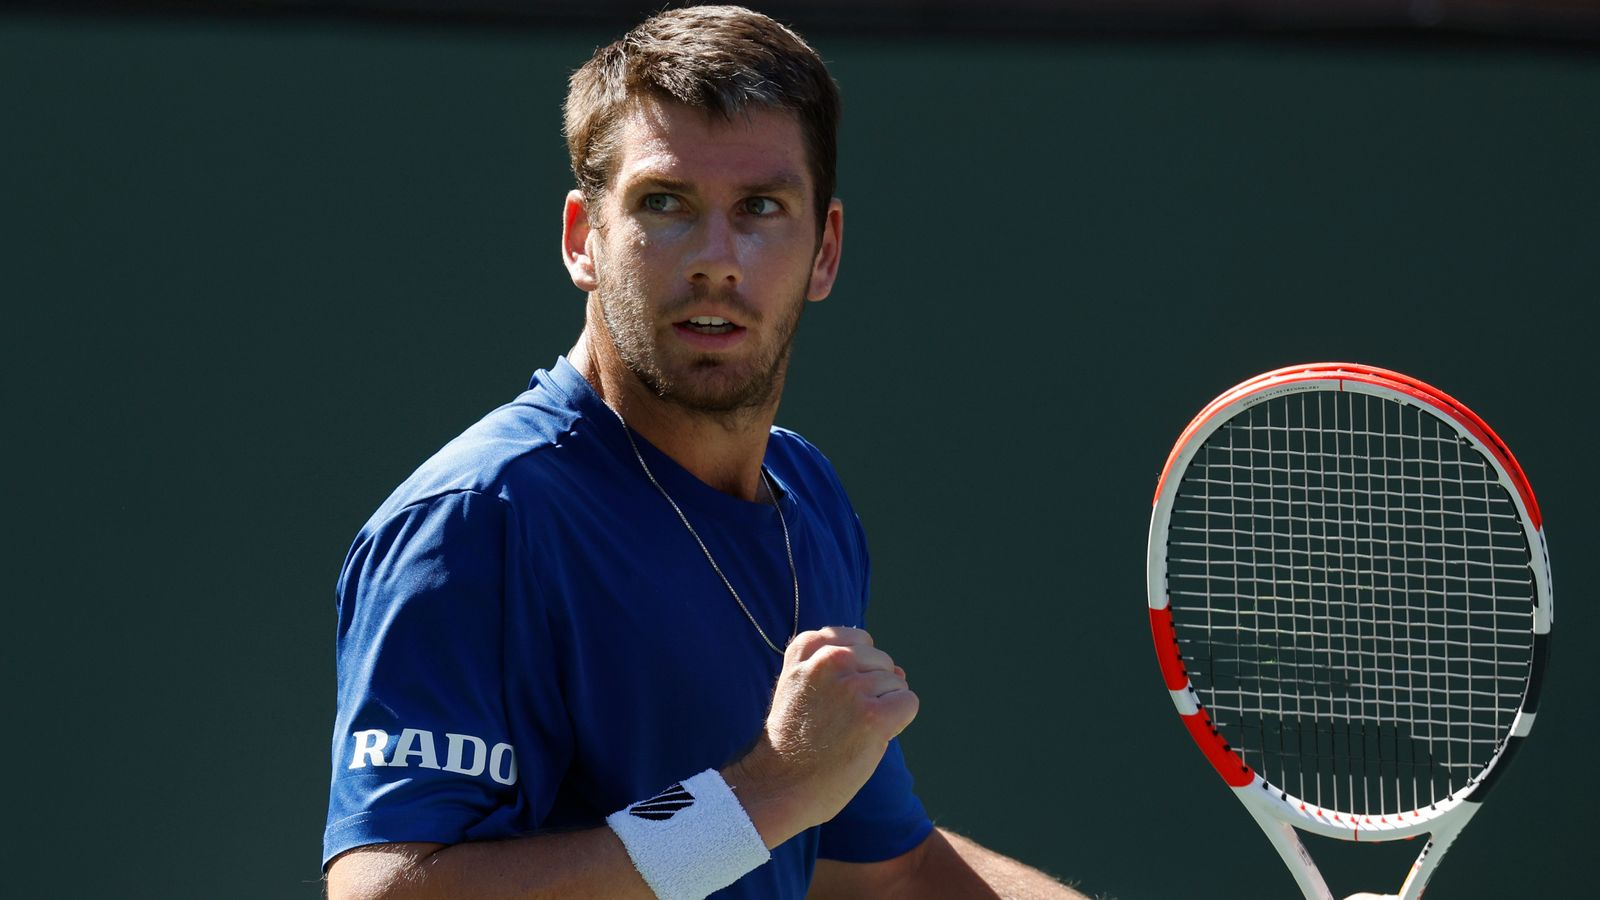 Cameron Norrie makes quarter-finals in Indian Wells, while top seed Daniil Medvedev crashes out   Tennis News